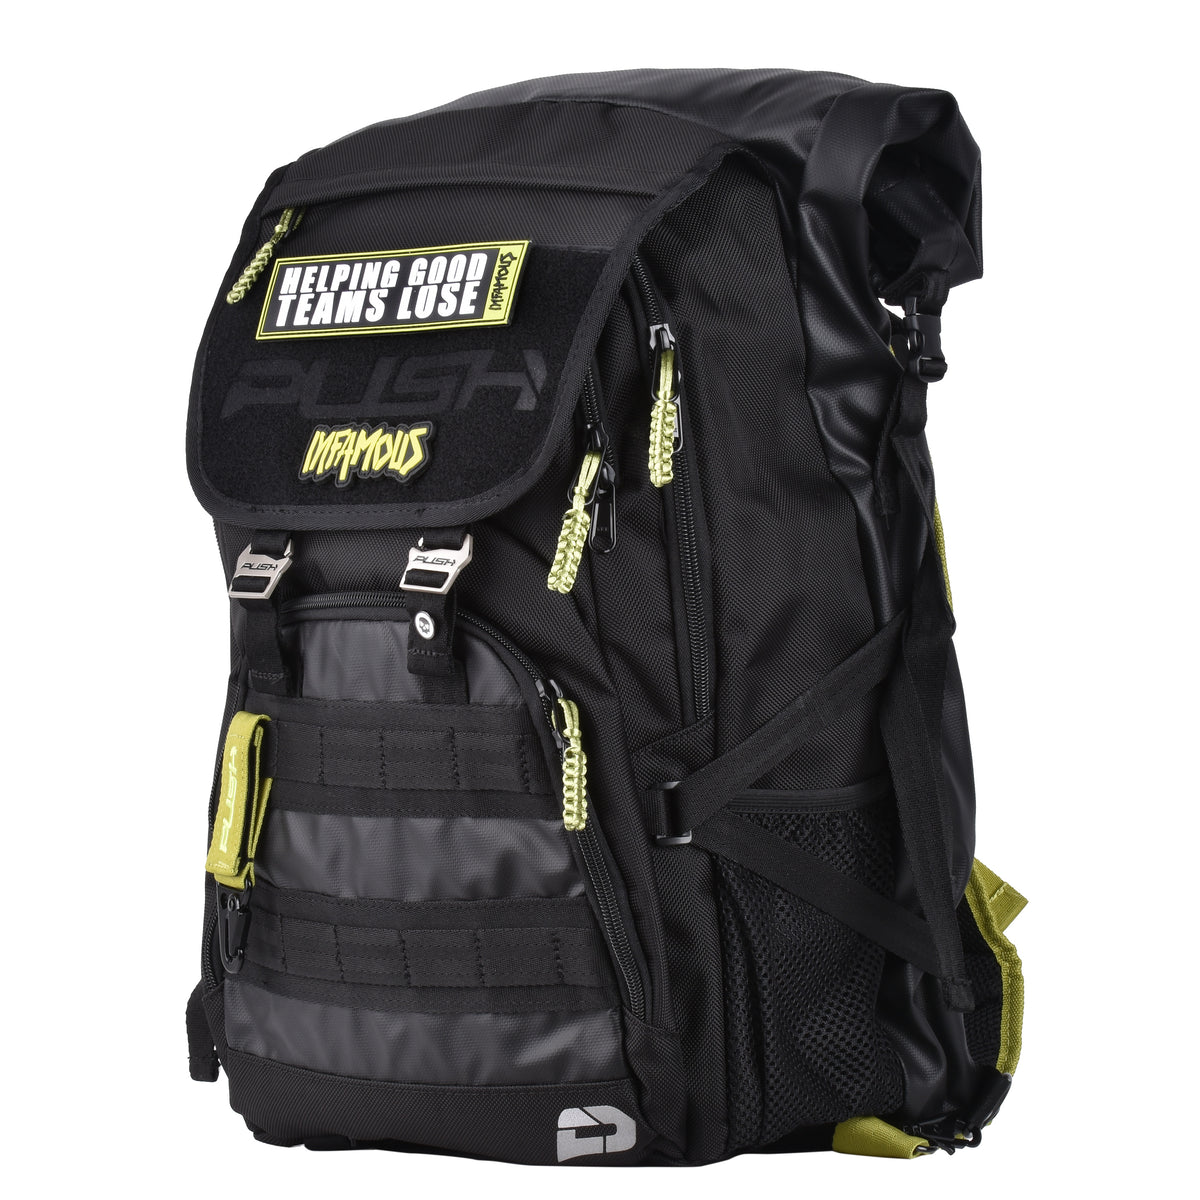 Infamous Edition Division One Backpack